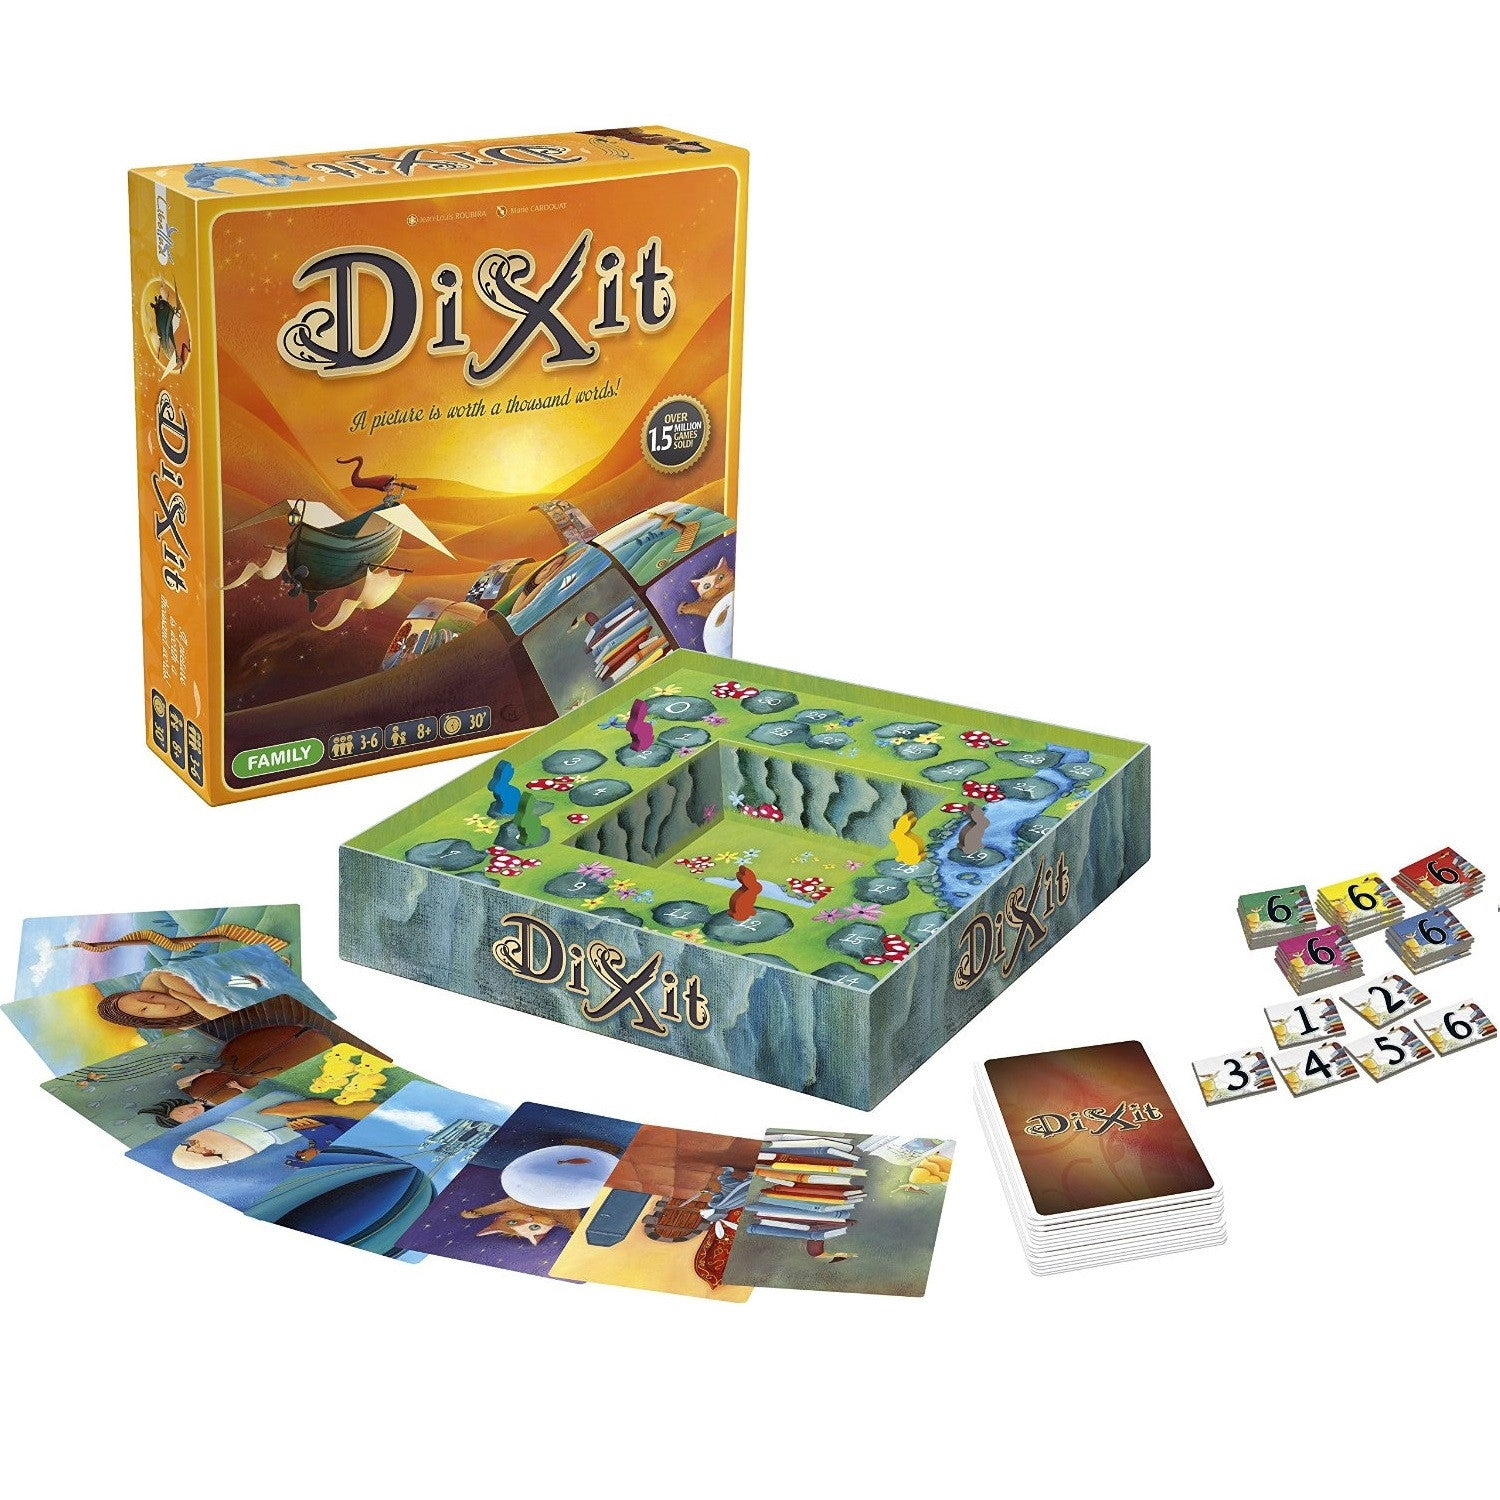 Dixit - Toybox Toy Jungle